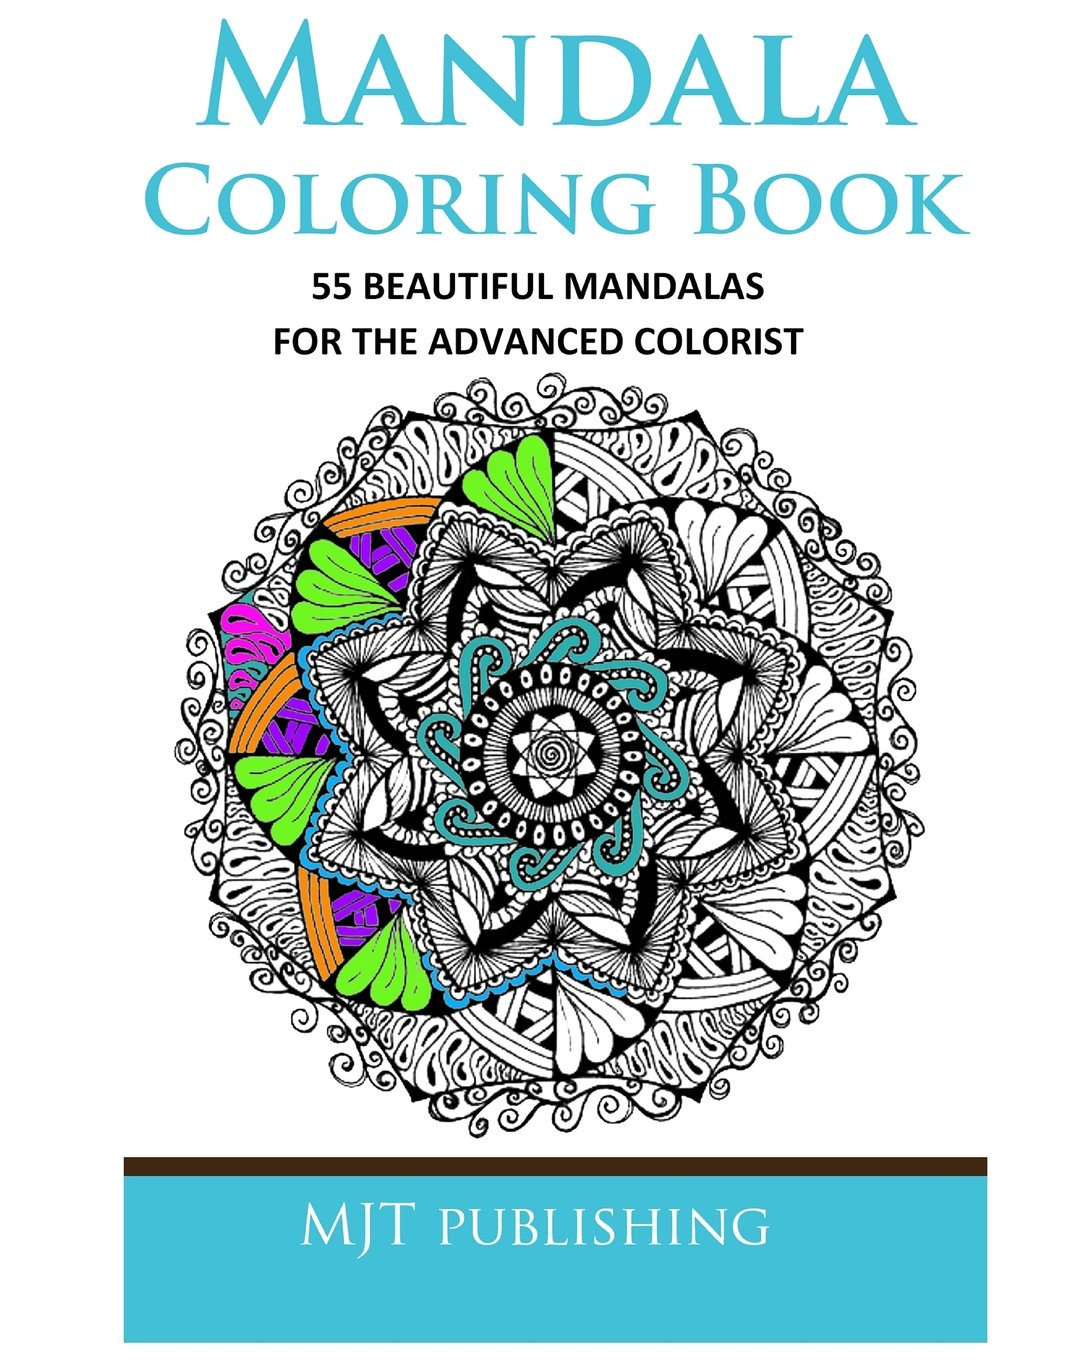 Mandala coloring pages amazon - Mandala Coloring Book Mjt Publishing 9781491087275 Amazon Com Books